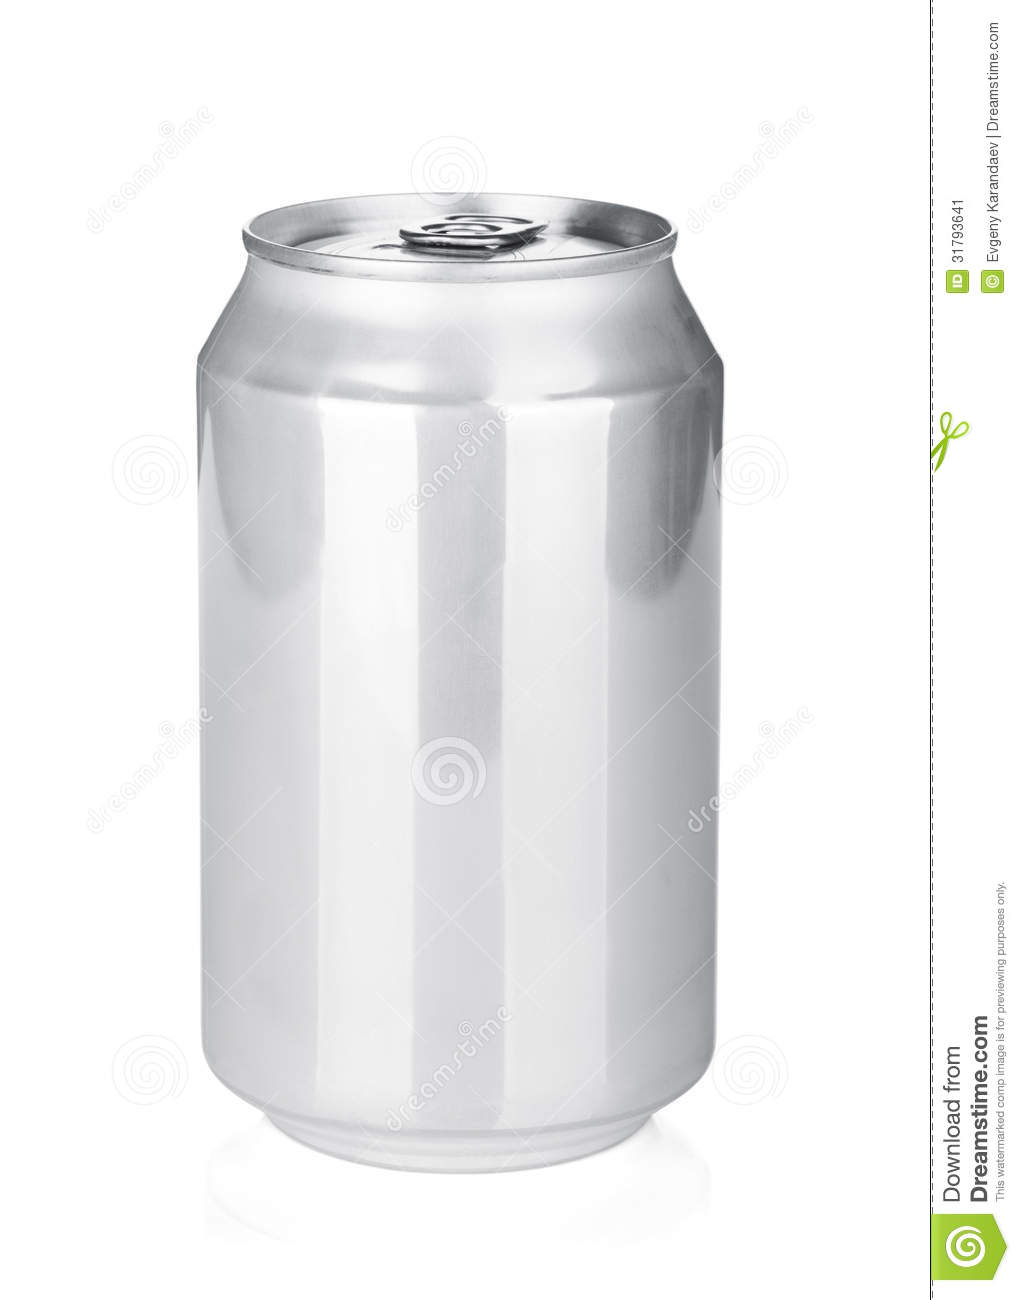 Where Can I Use It: Aluminum Can Stock Image